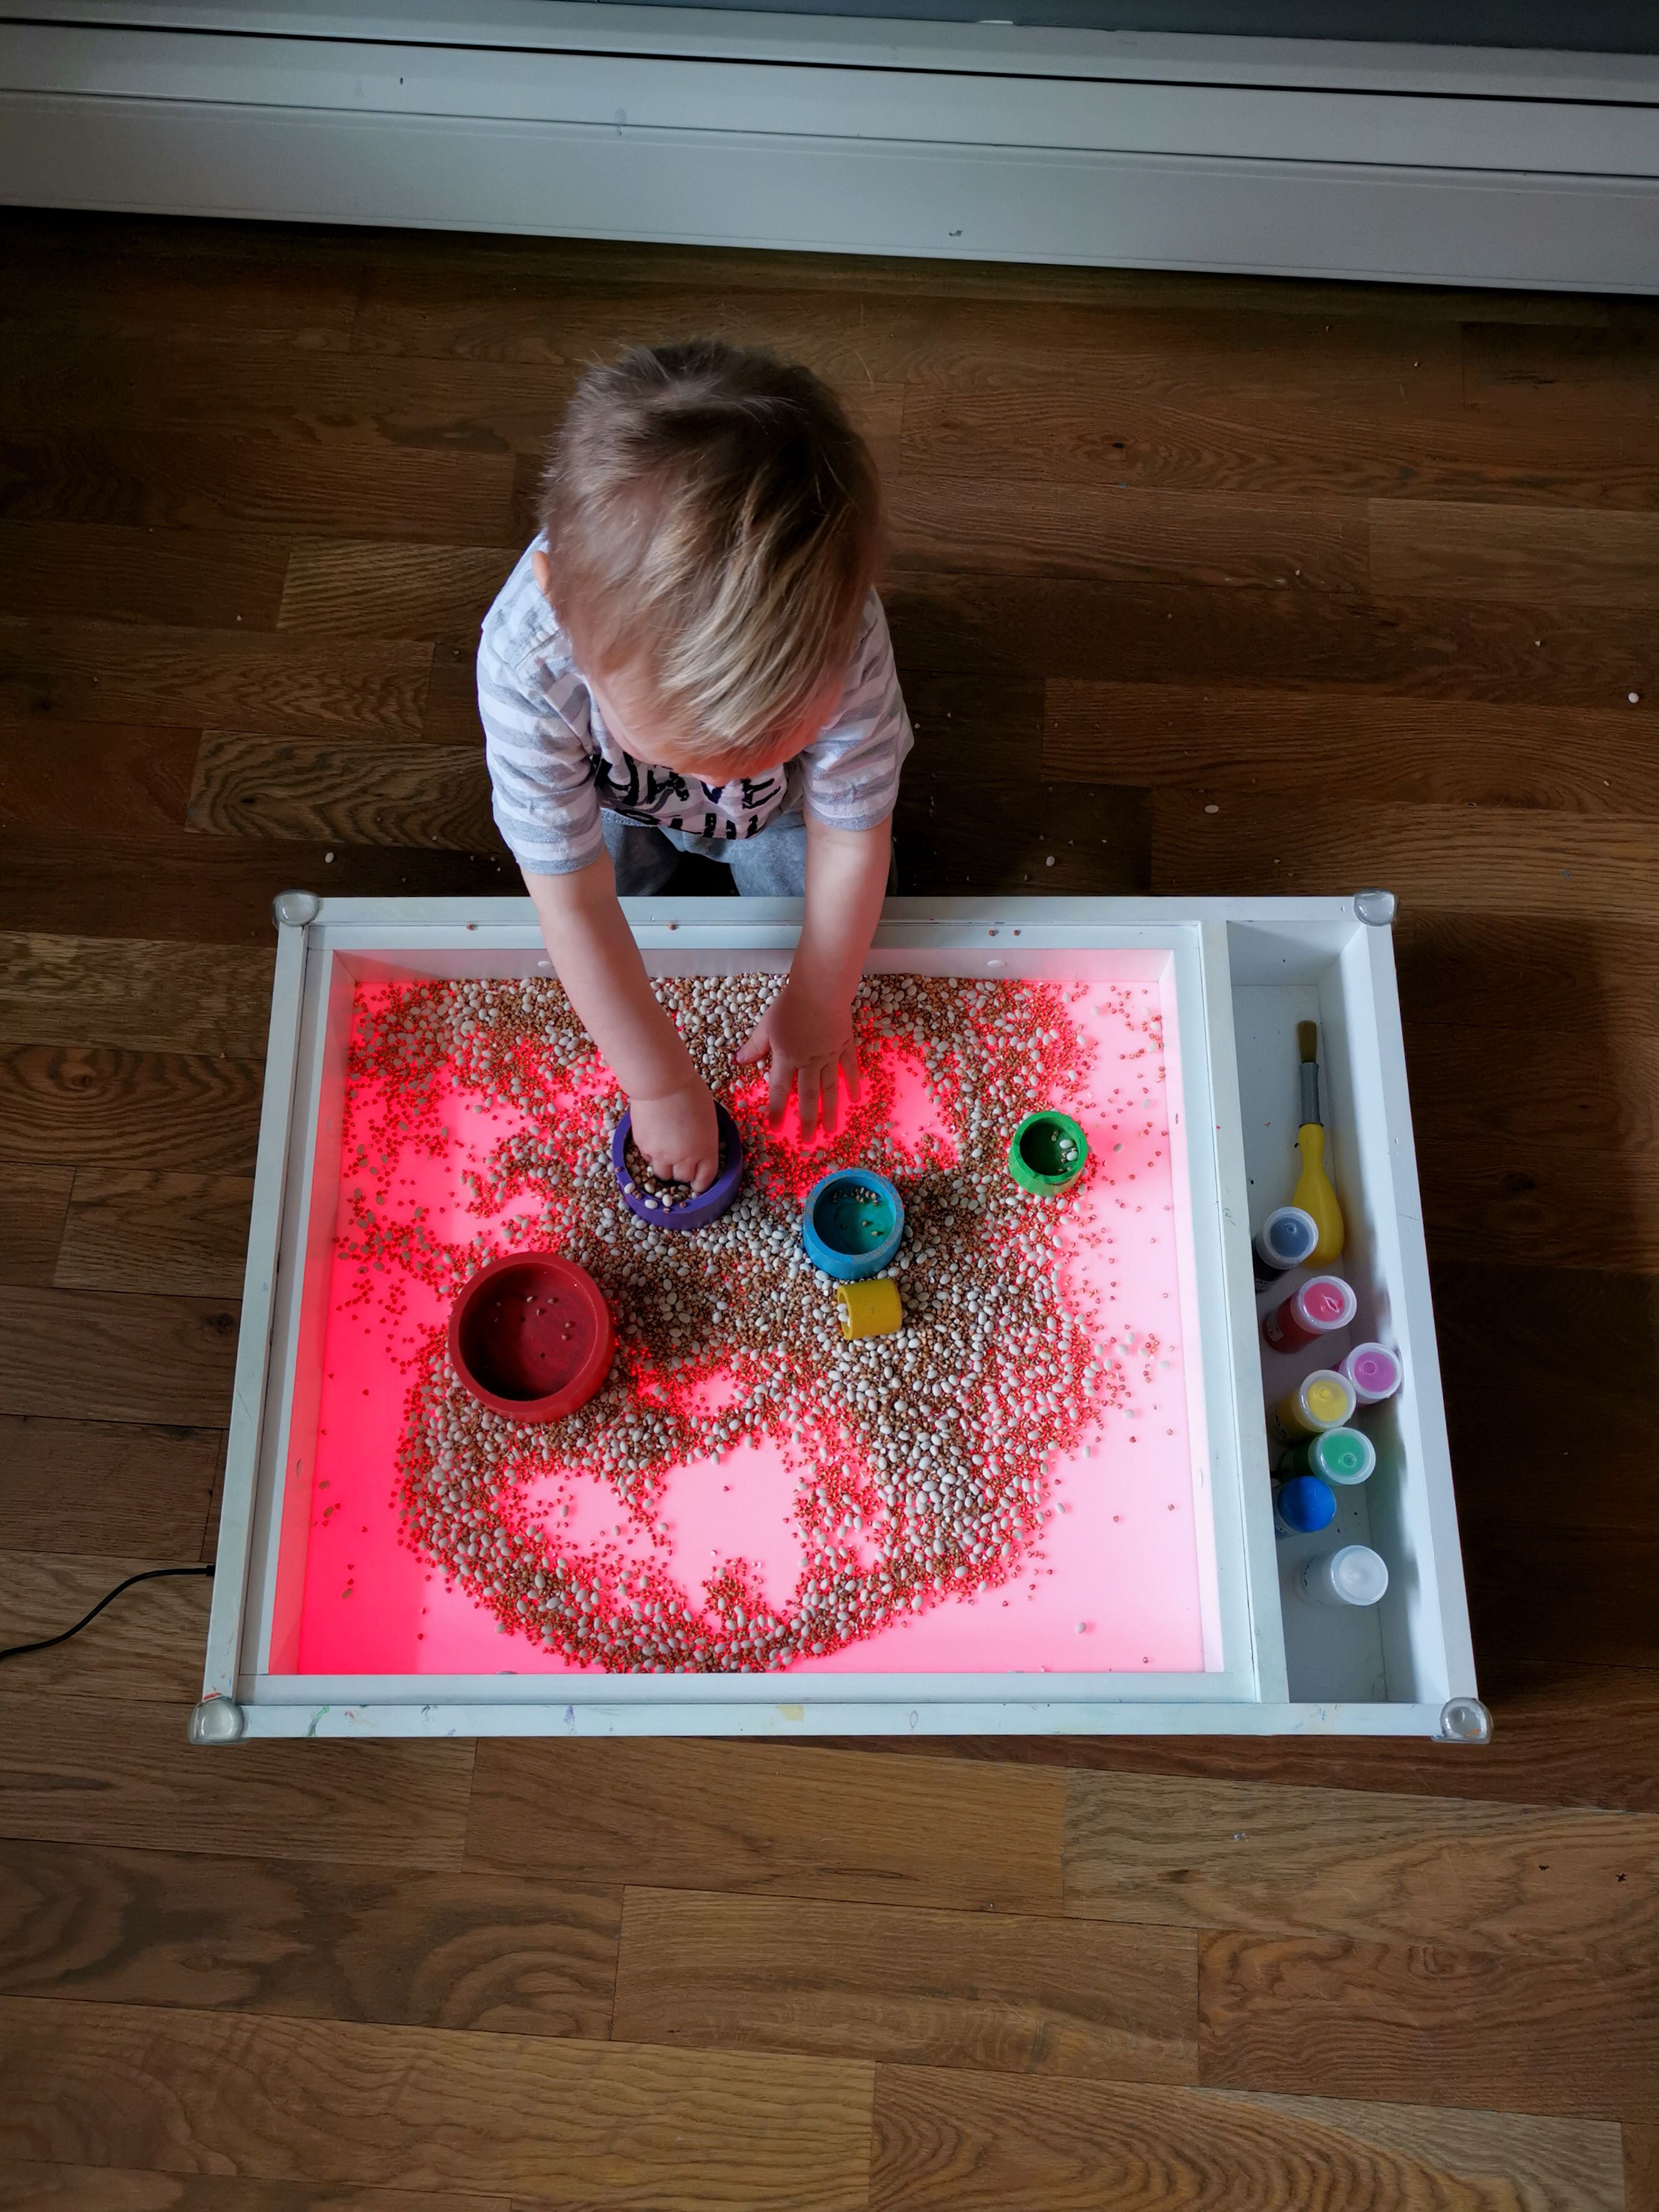 Your kid will enjoy playing with loose materials on our